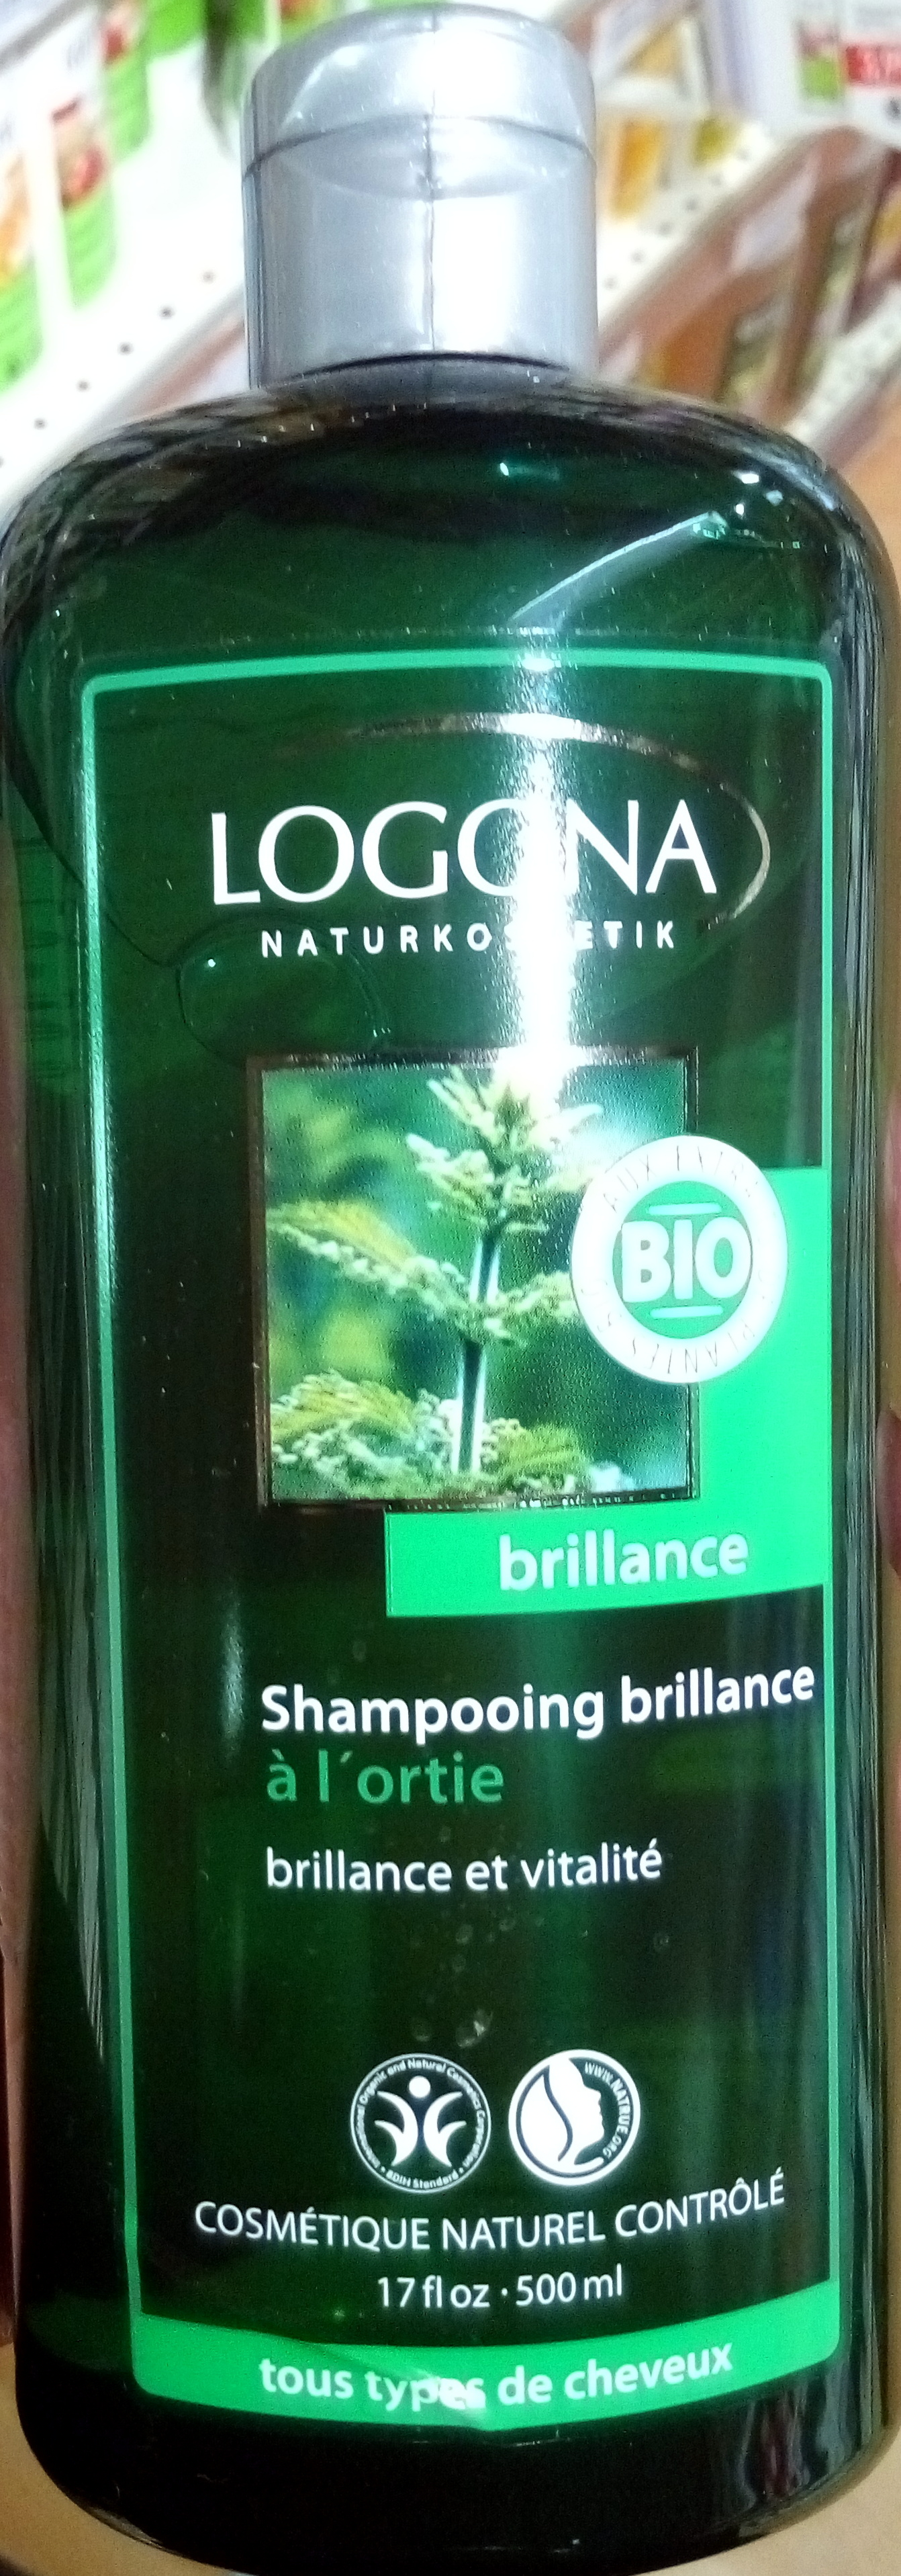 Shampooing brillance à l'ortie - Product